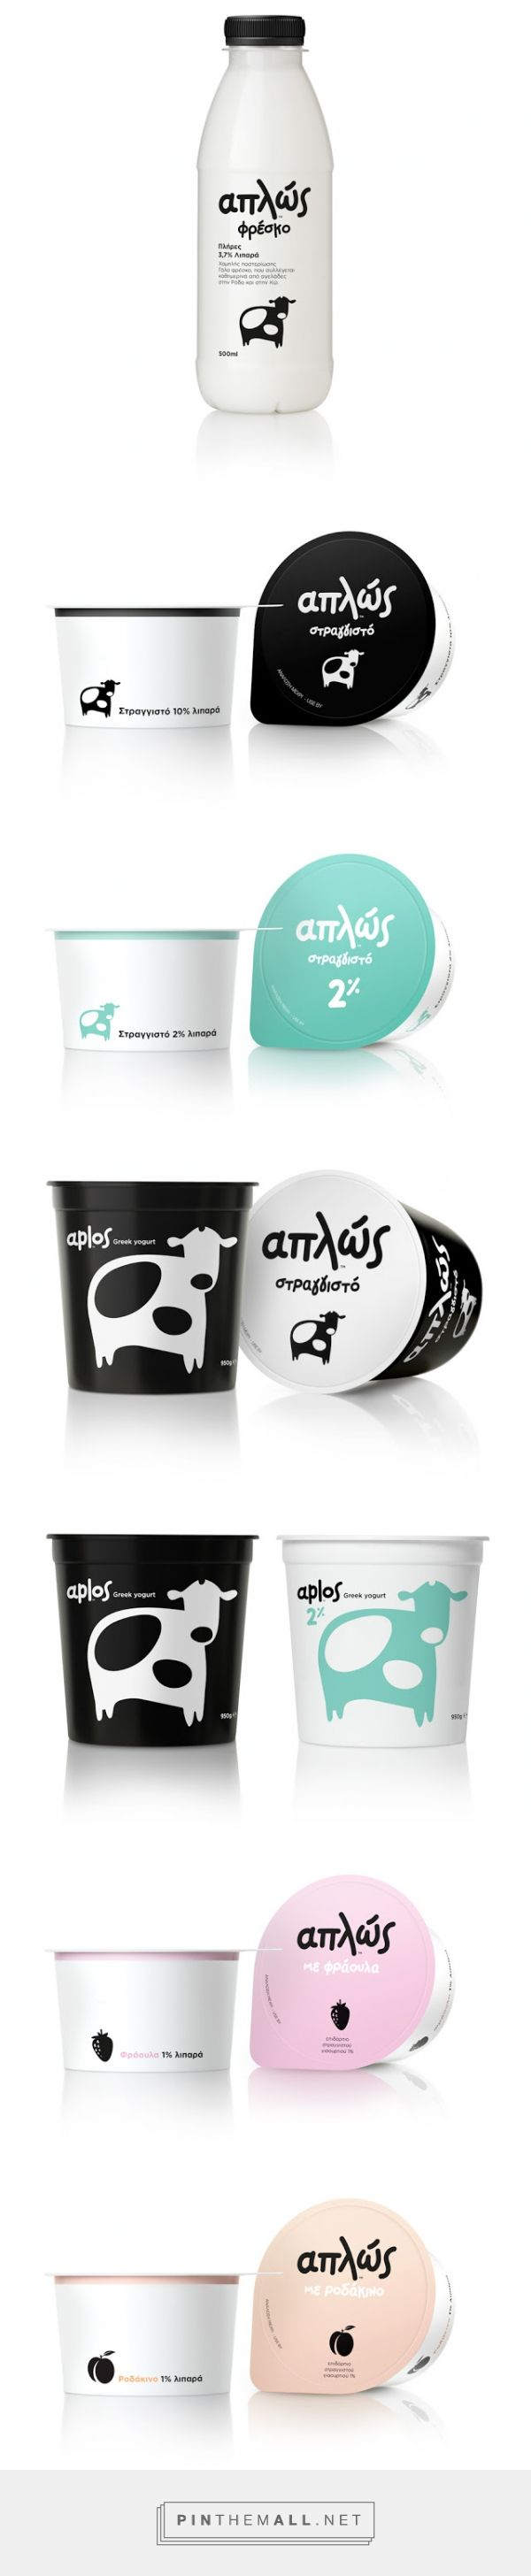 Aplos #dairy product #packaging designed by mousegraphics - http://www.packagingoftheworld.com/2015/03/aplos.html